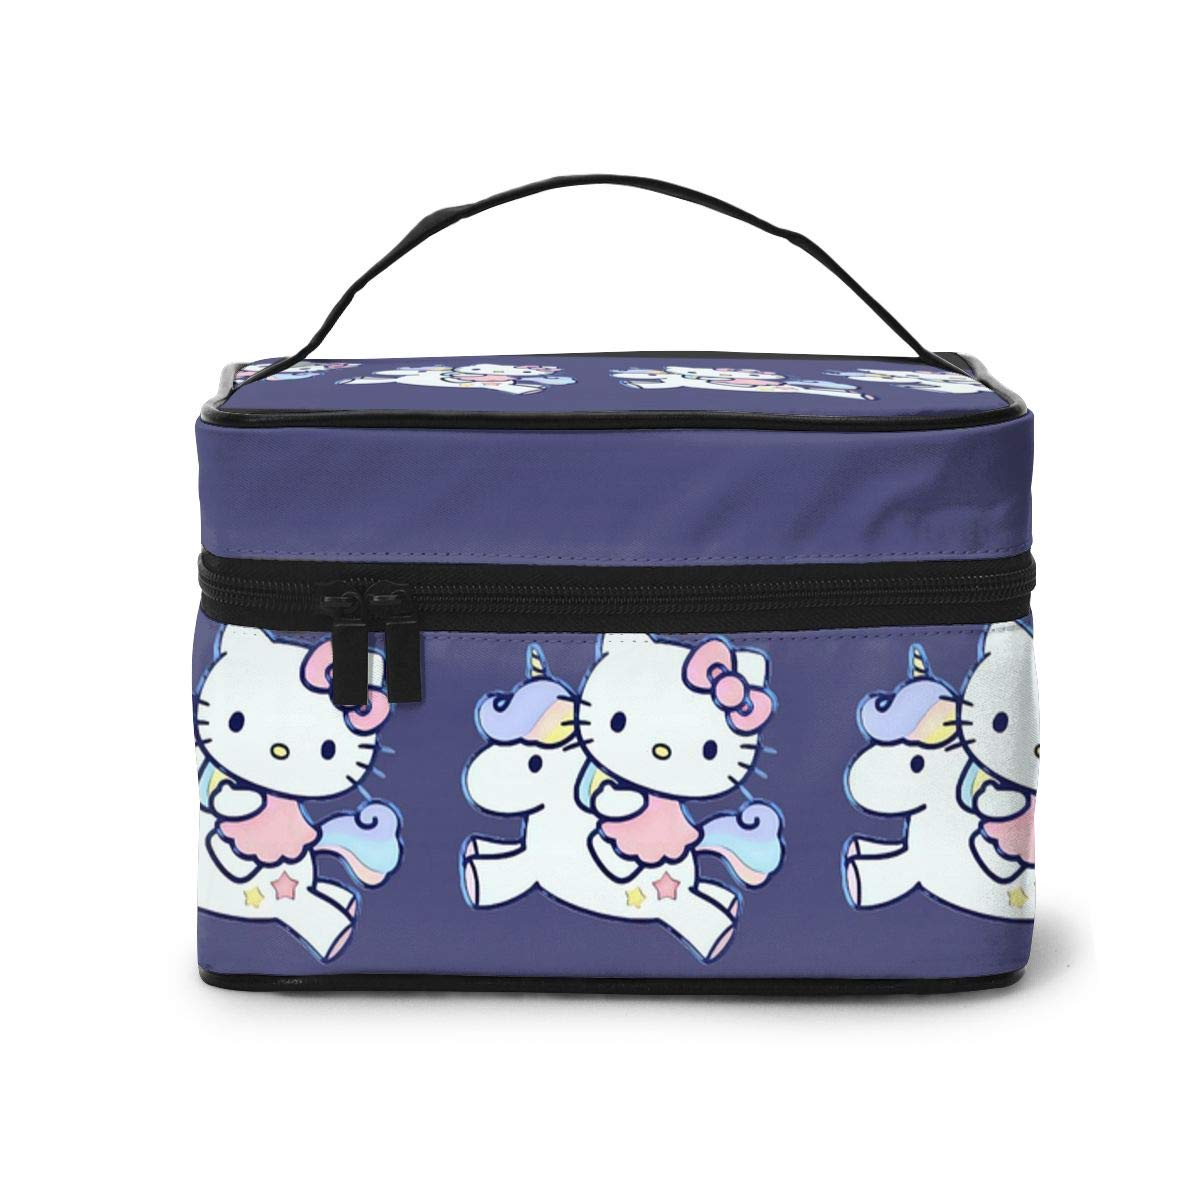 Makeup Bag, Hello Kitty with Unicorn Travel Portable Cosmetic Bag Large Pouch Mesh Brush Organizer Toiletry Bag for Women Girls